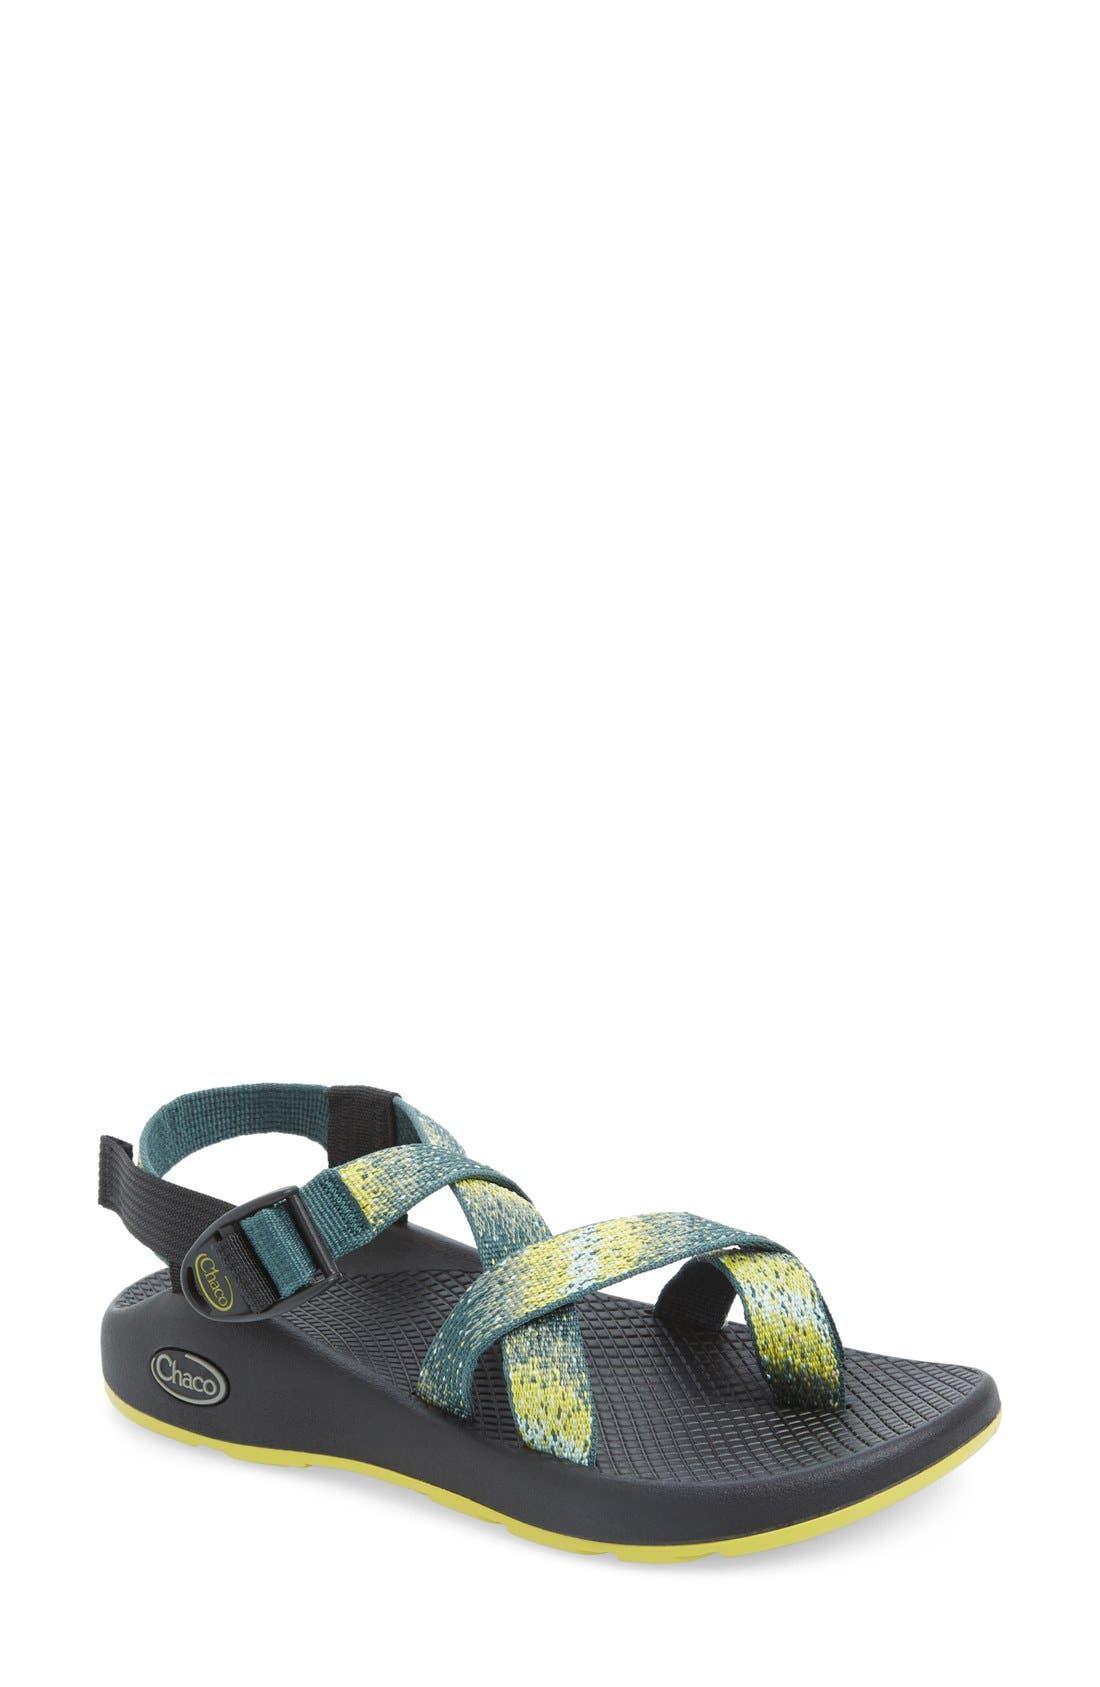 Alternate Image 1 Selected - Chaco 'Z2 Yampa' Sandal